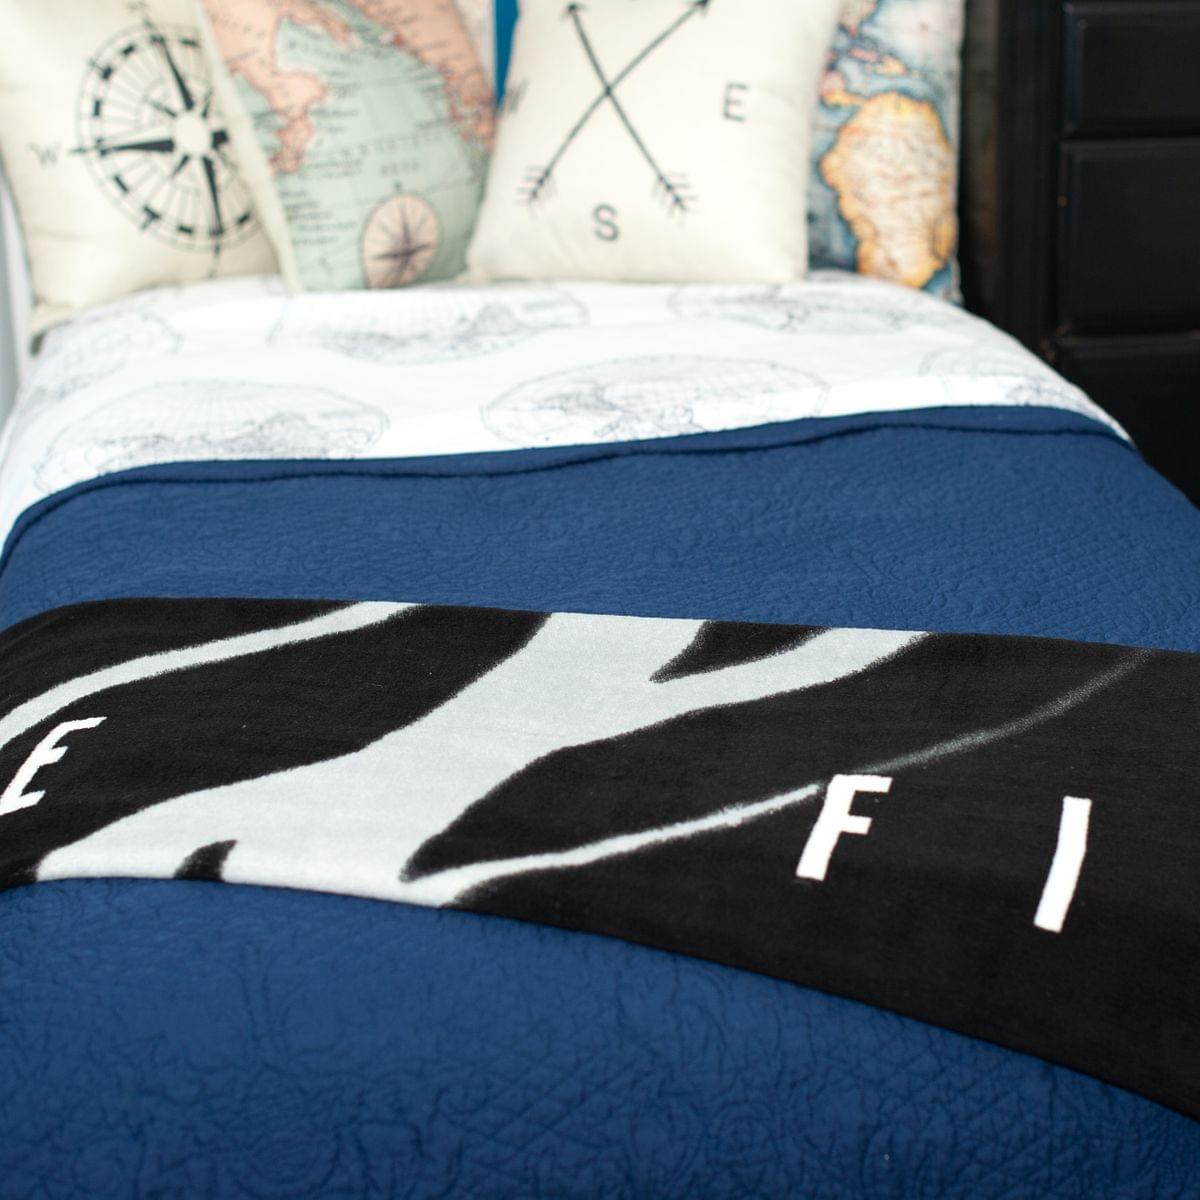 The X-Files I Want To Believe Lightweight Fleece Throw Blanket | 50 x 60 inches